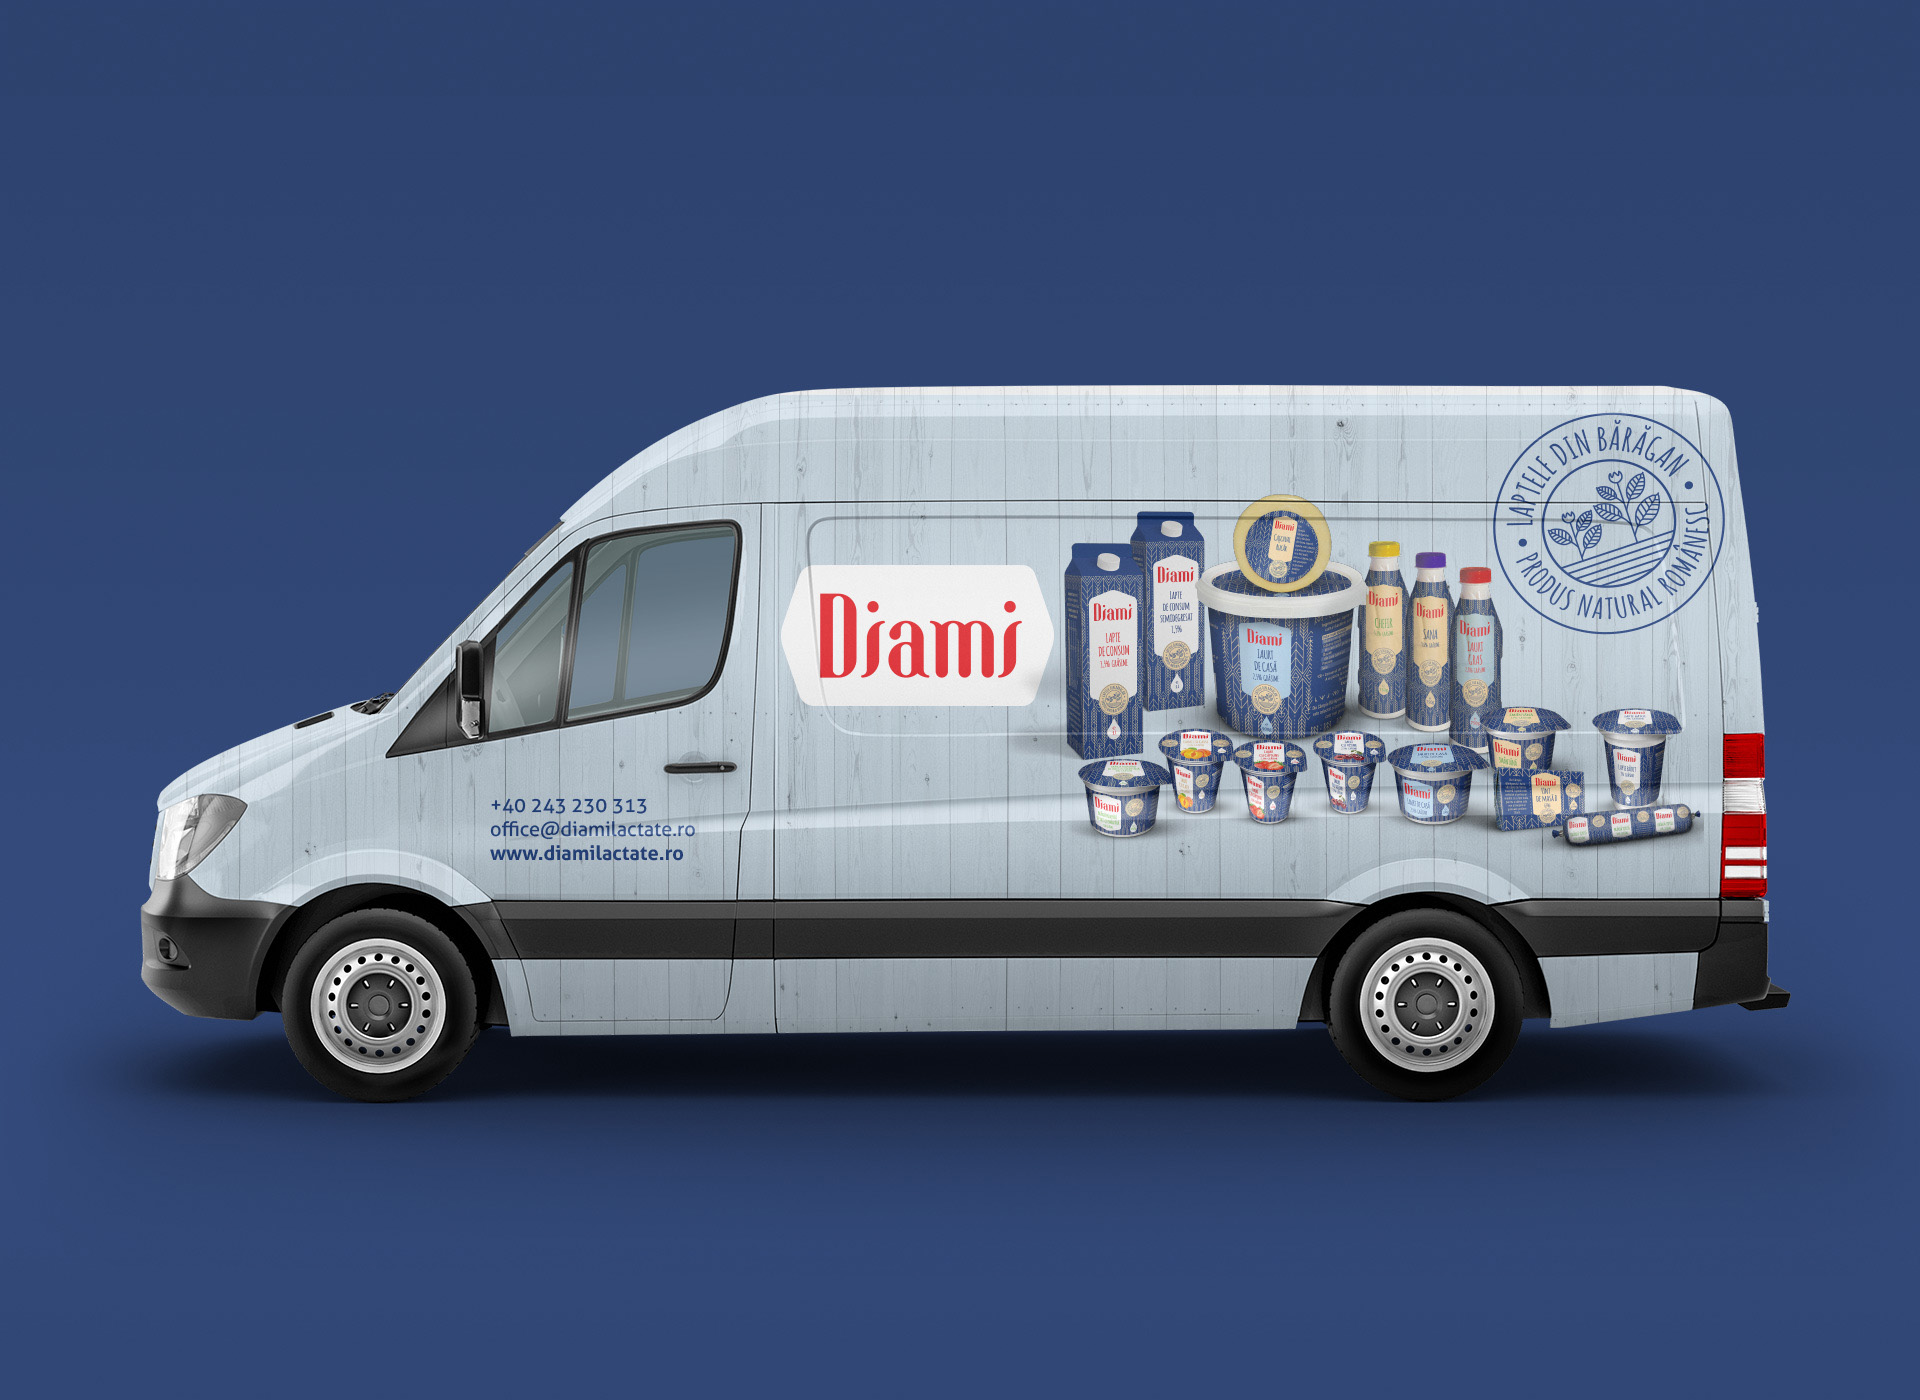 car diami branding by inoveo agency